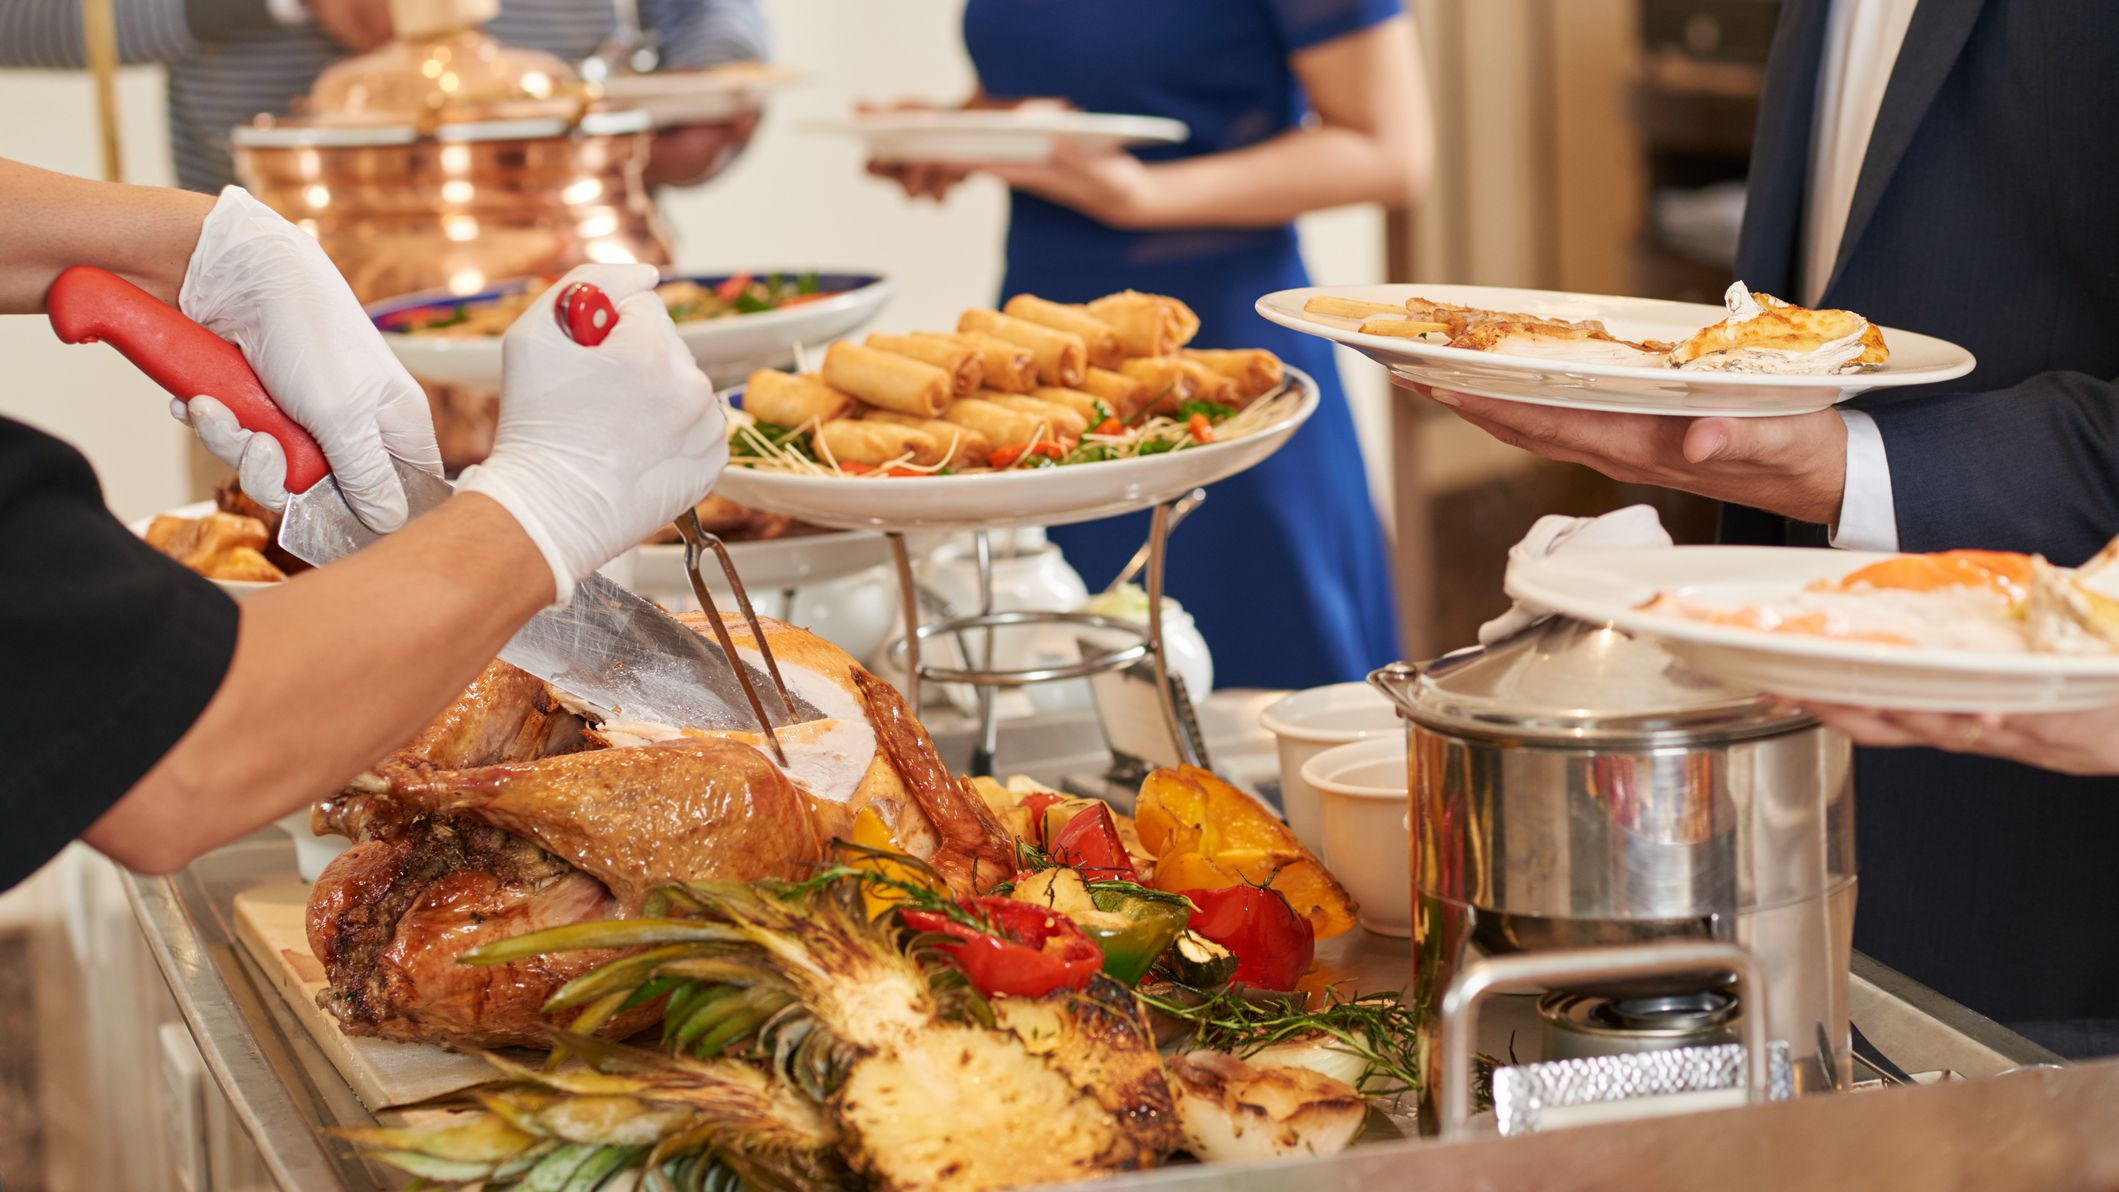 Top Suggestions To Dine Out For Thanksgiving In Florida